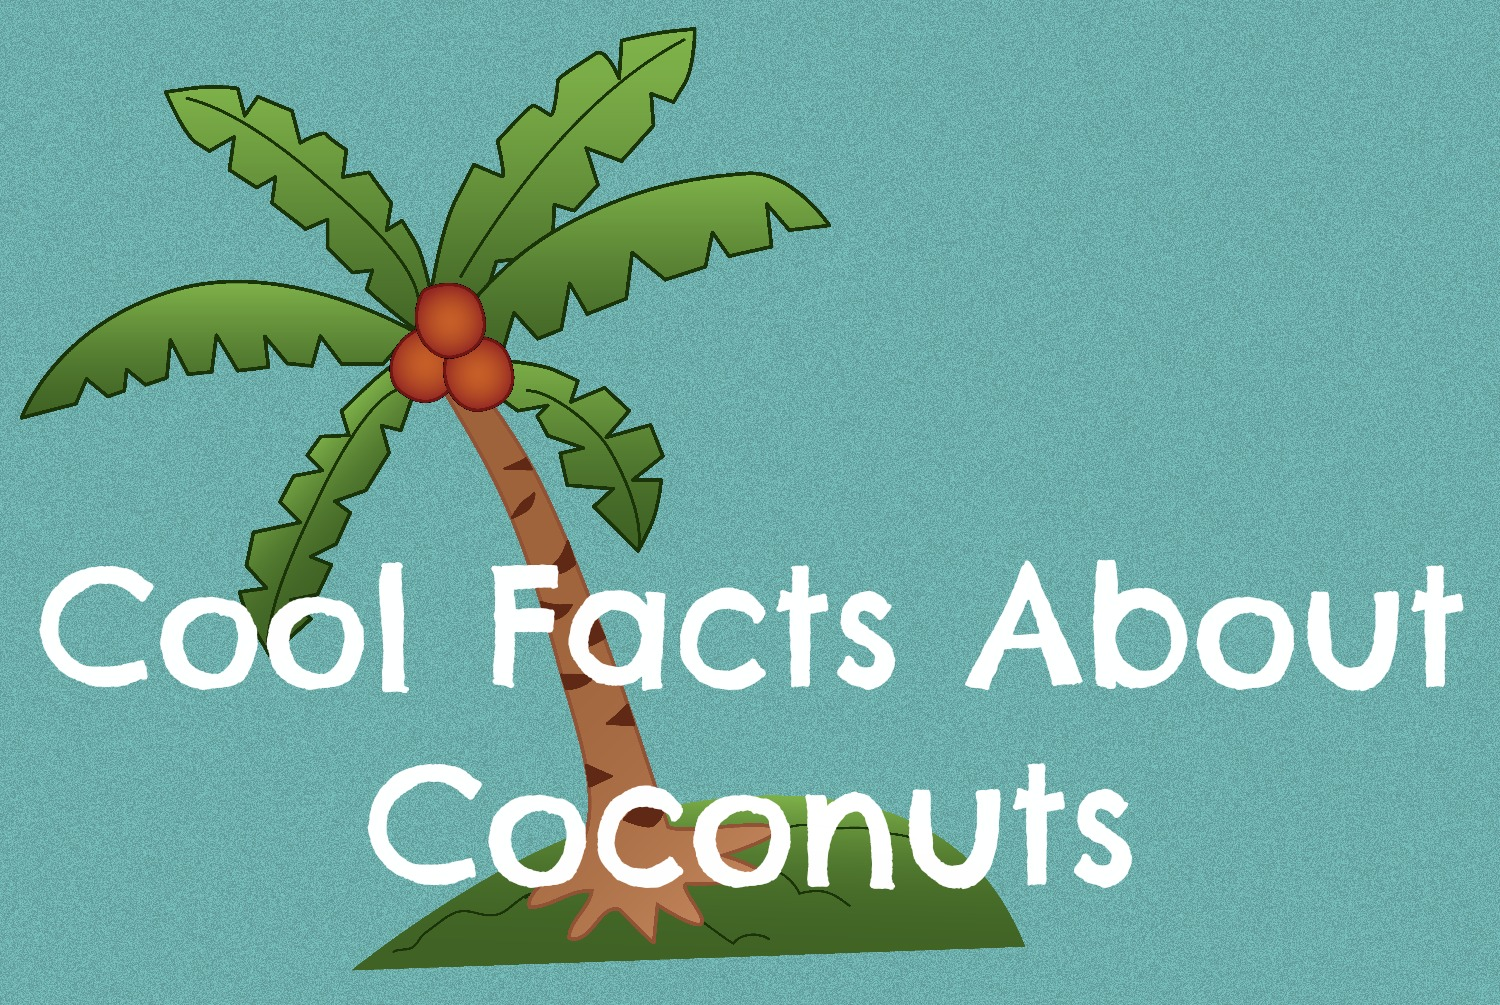 Cool Facts About Coconuts - Ponder Monster